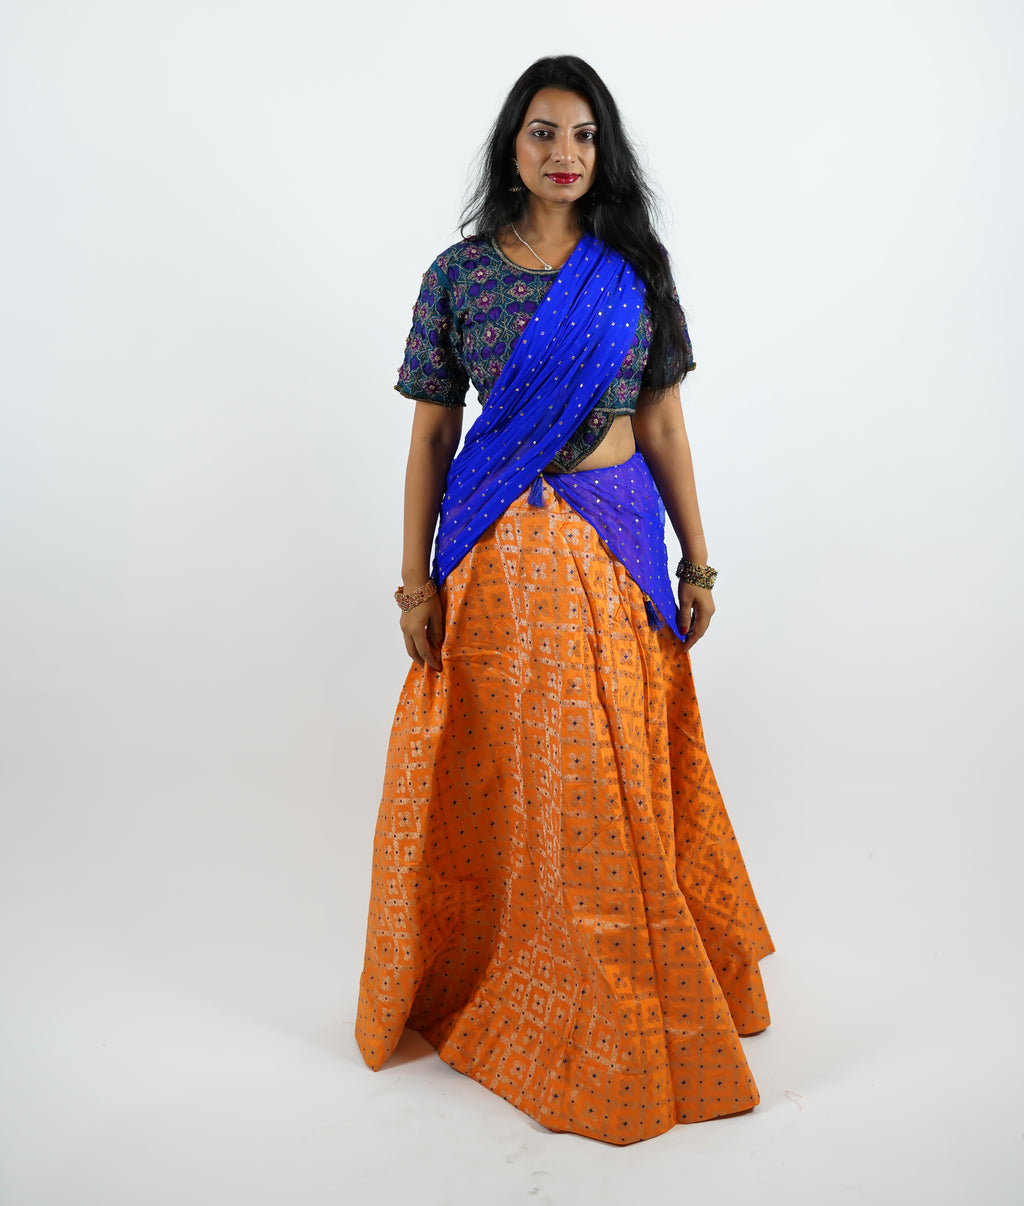 Banarasi Silk Brocade Checkered Apricot Orange Lehenga Skirt